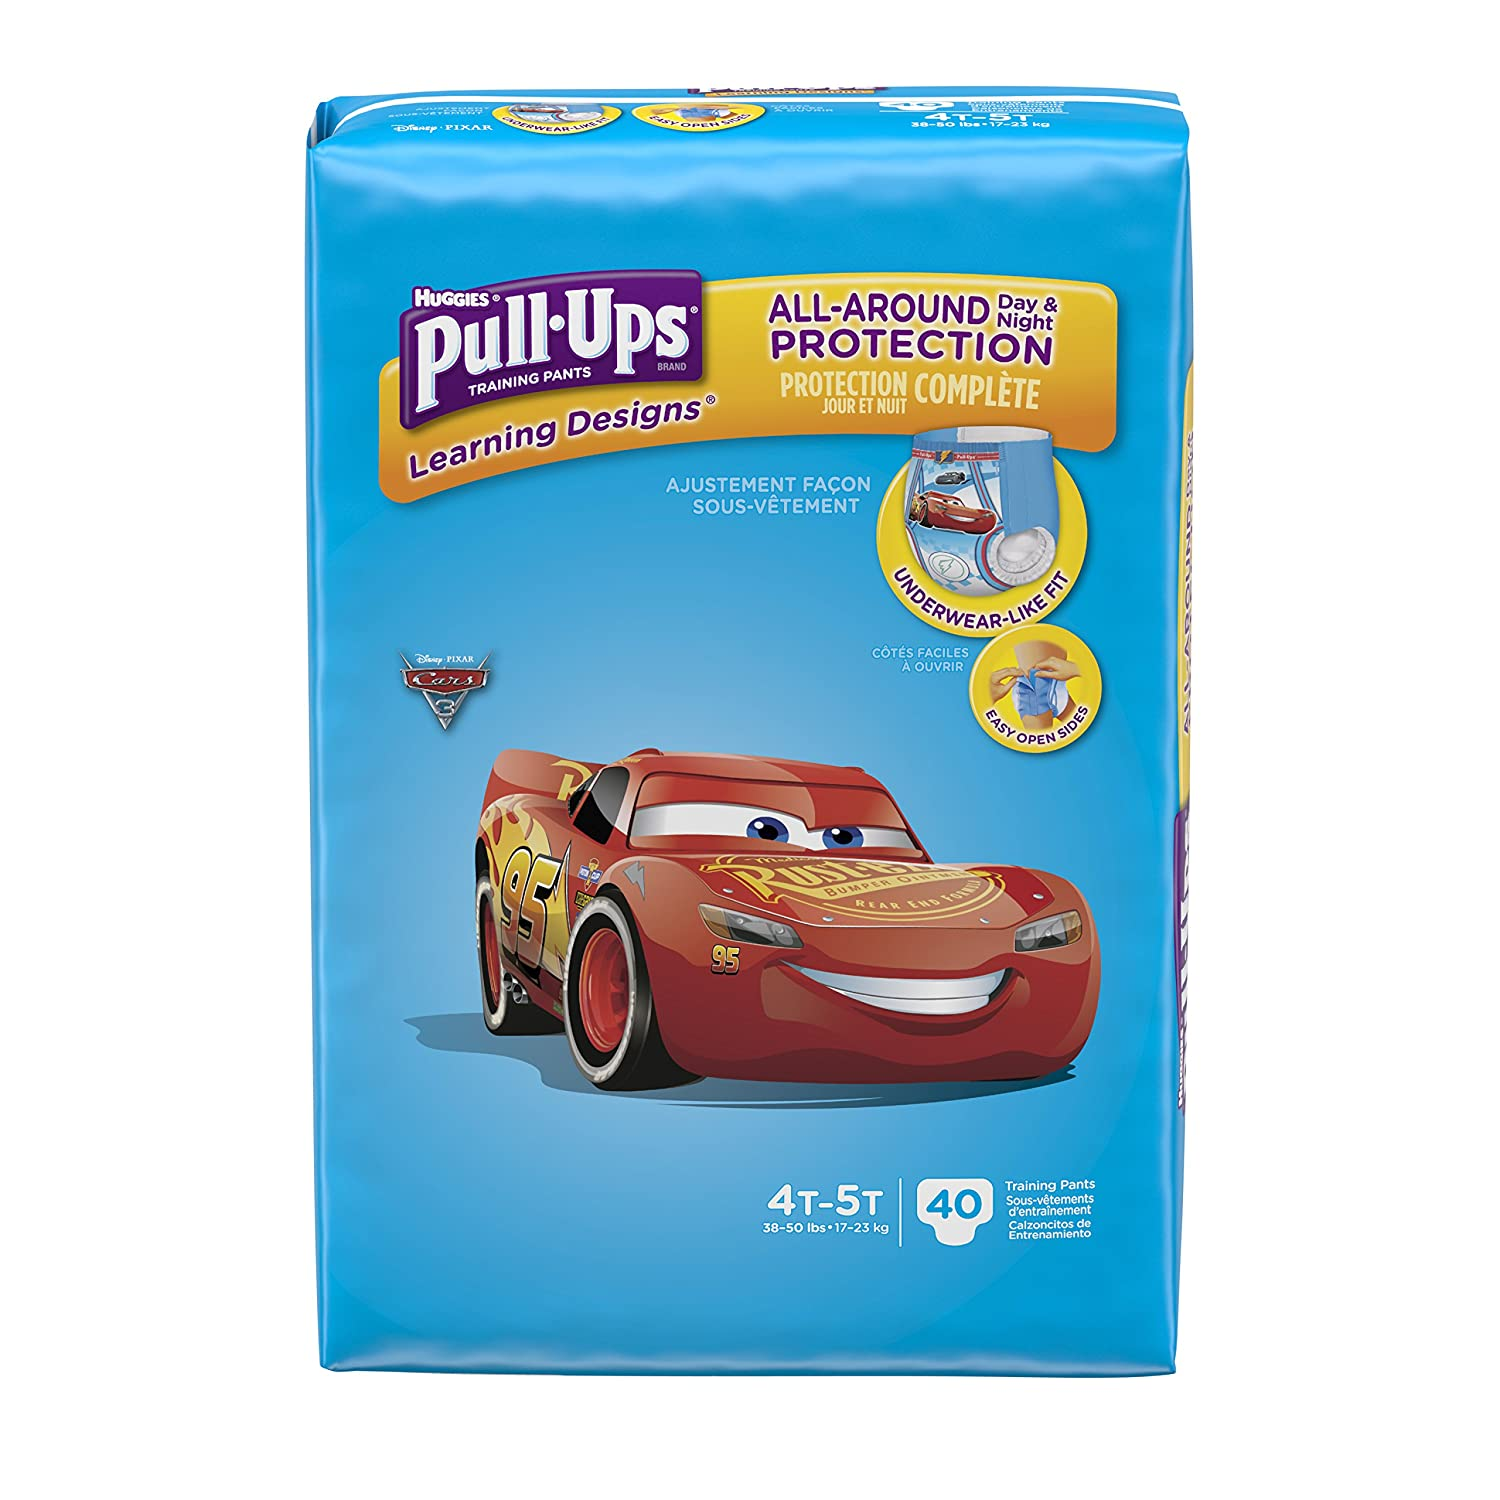 Pull-Ups Learning Designs Training Pants for Boys, 4T-5T, 40 Count (Packaging May Vary) Kimberly-Clark Corp. 10036000451518